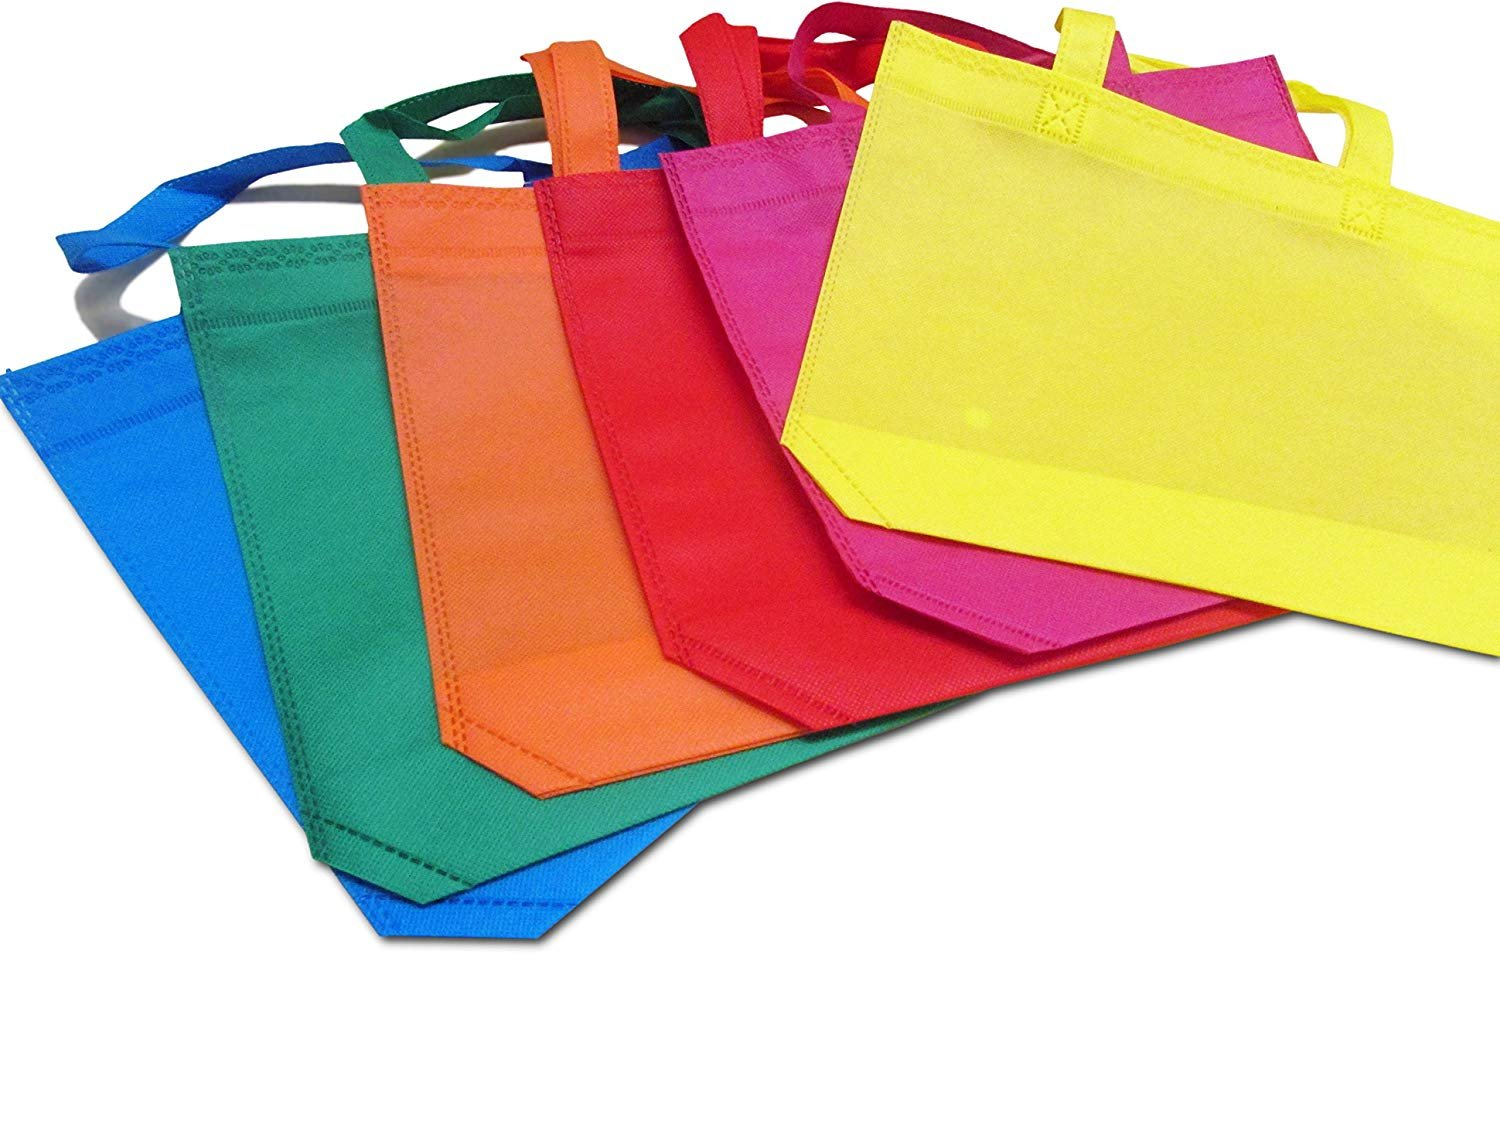 dazzling toys Party Favor Tote Gift Bags with Handles - Polyester Non-Woven Material, 12 Pack, Assorted Bright Colors - by